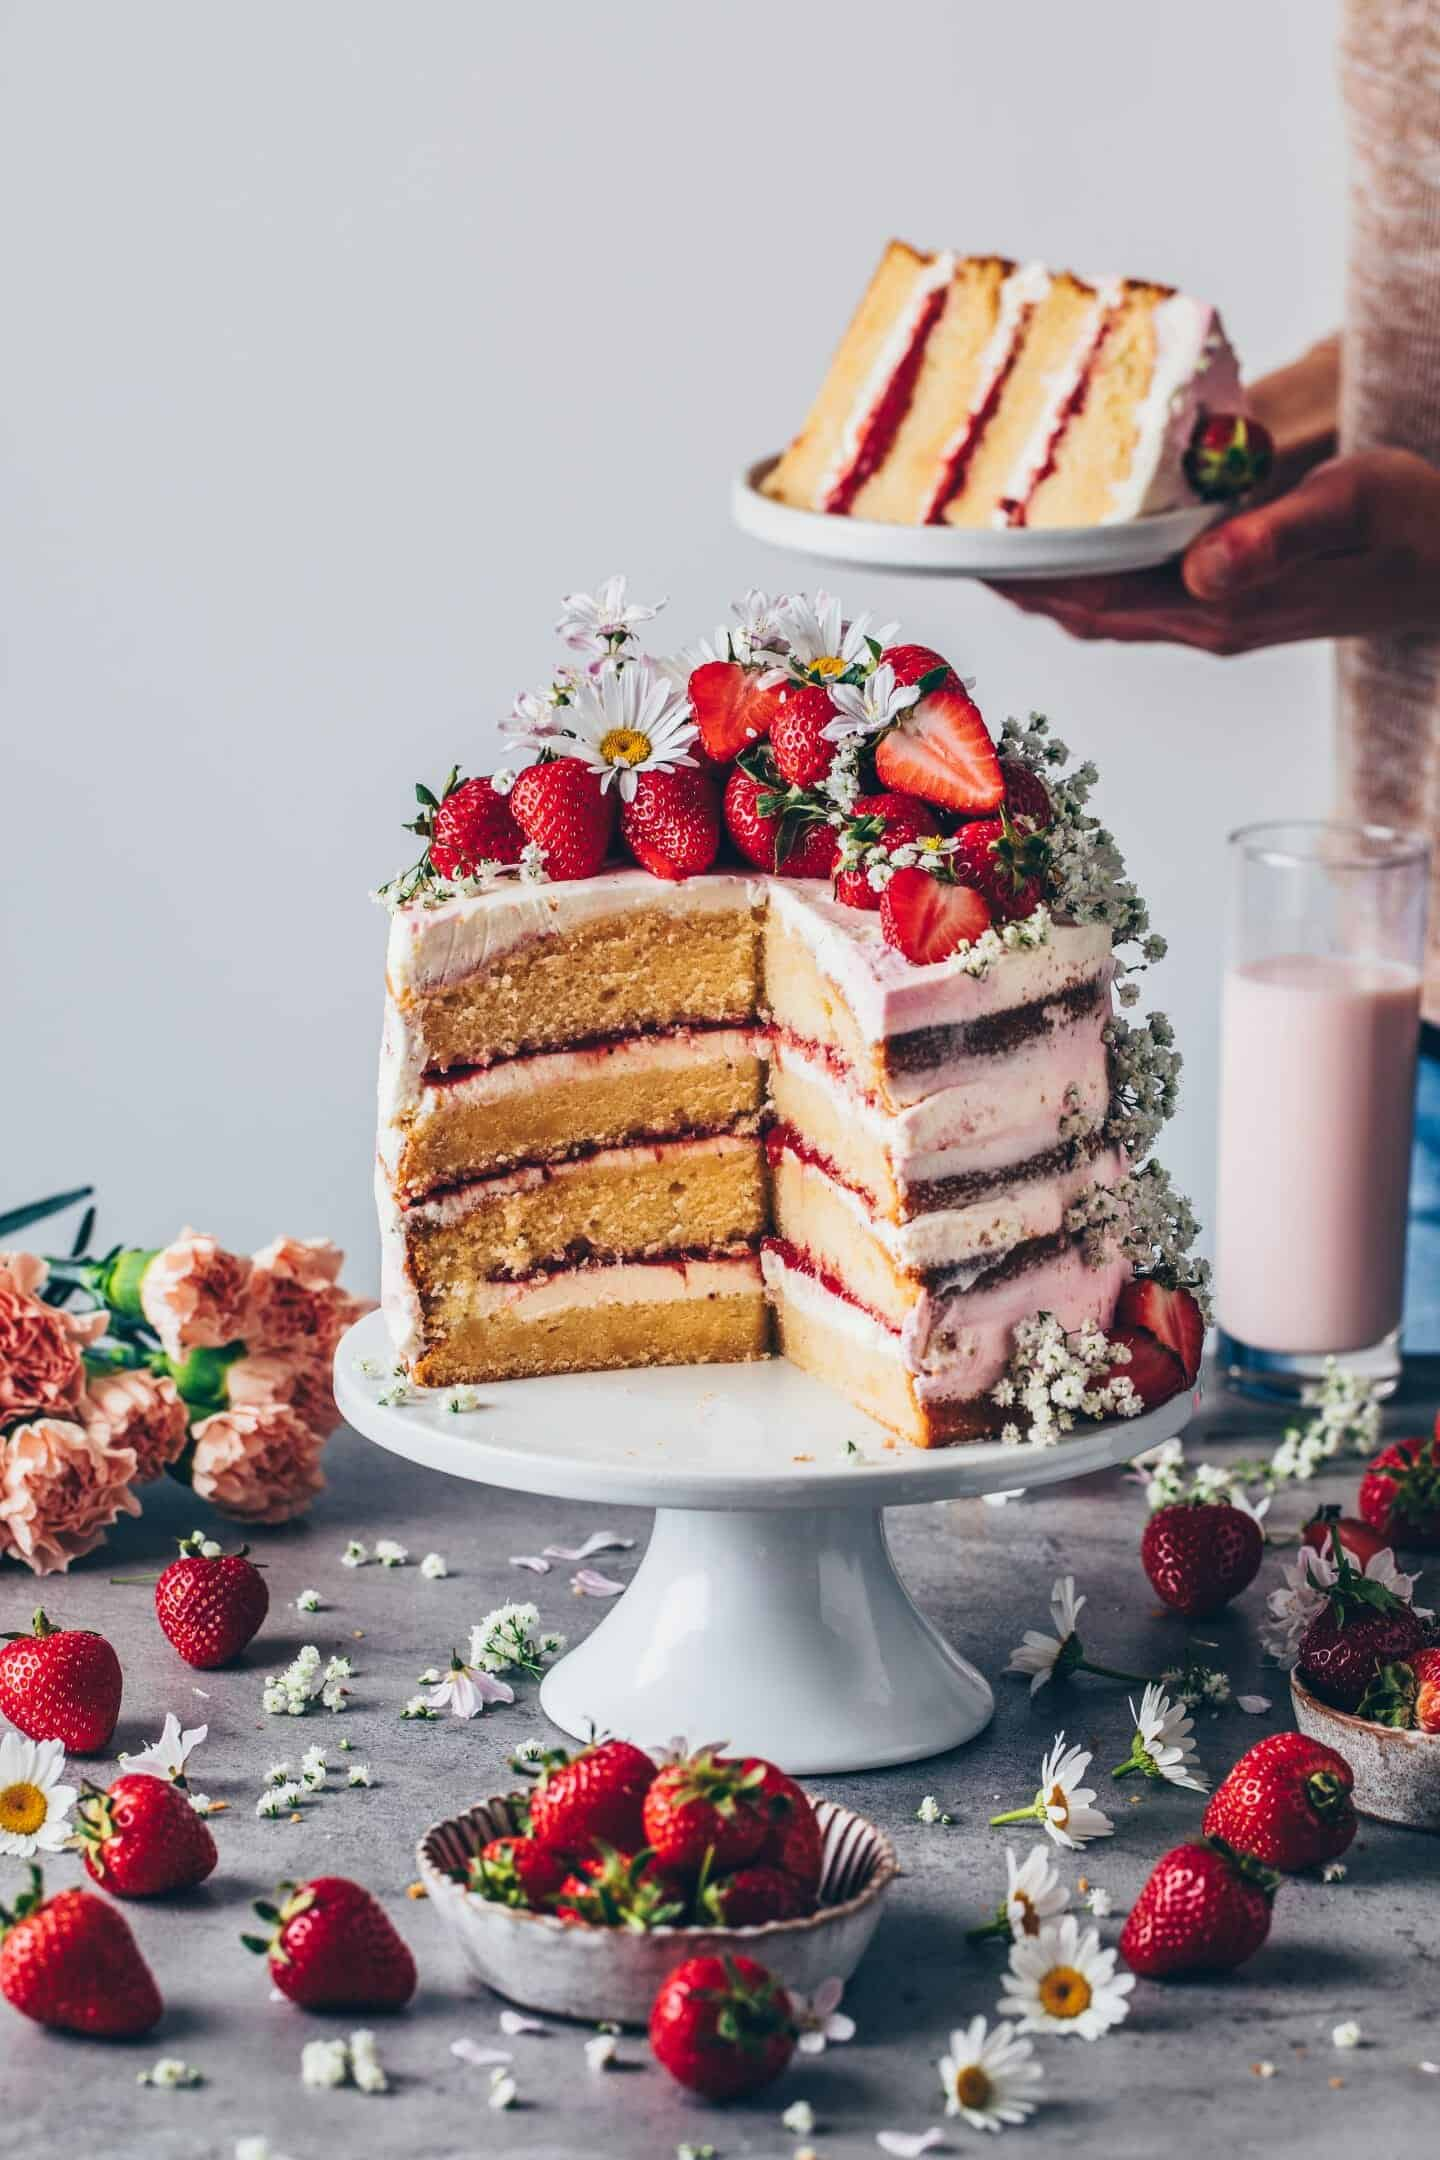 Strawberry Cream Naked Cake. Strawberry Cake. Vanilla cake layers with fresh strawberry filling. Homemade Strawberry jam. Dessert for summer. Step-by-step instructions how to make a layer cake.